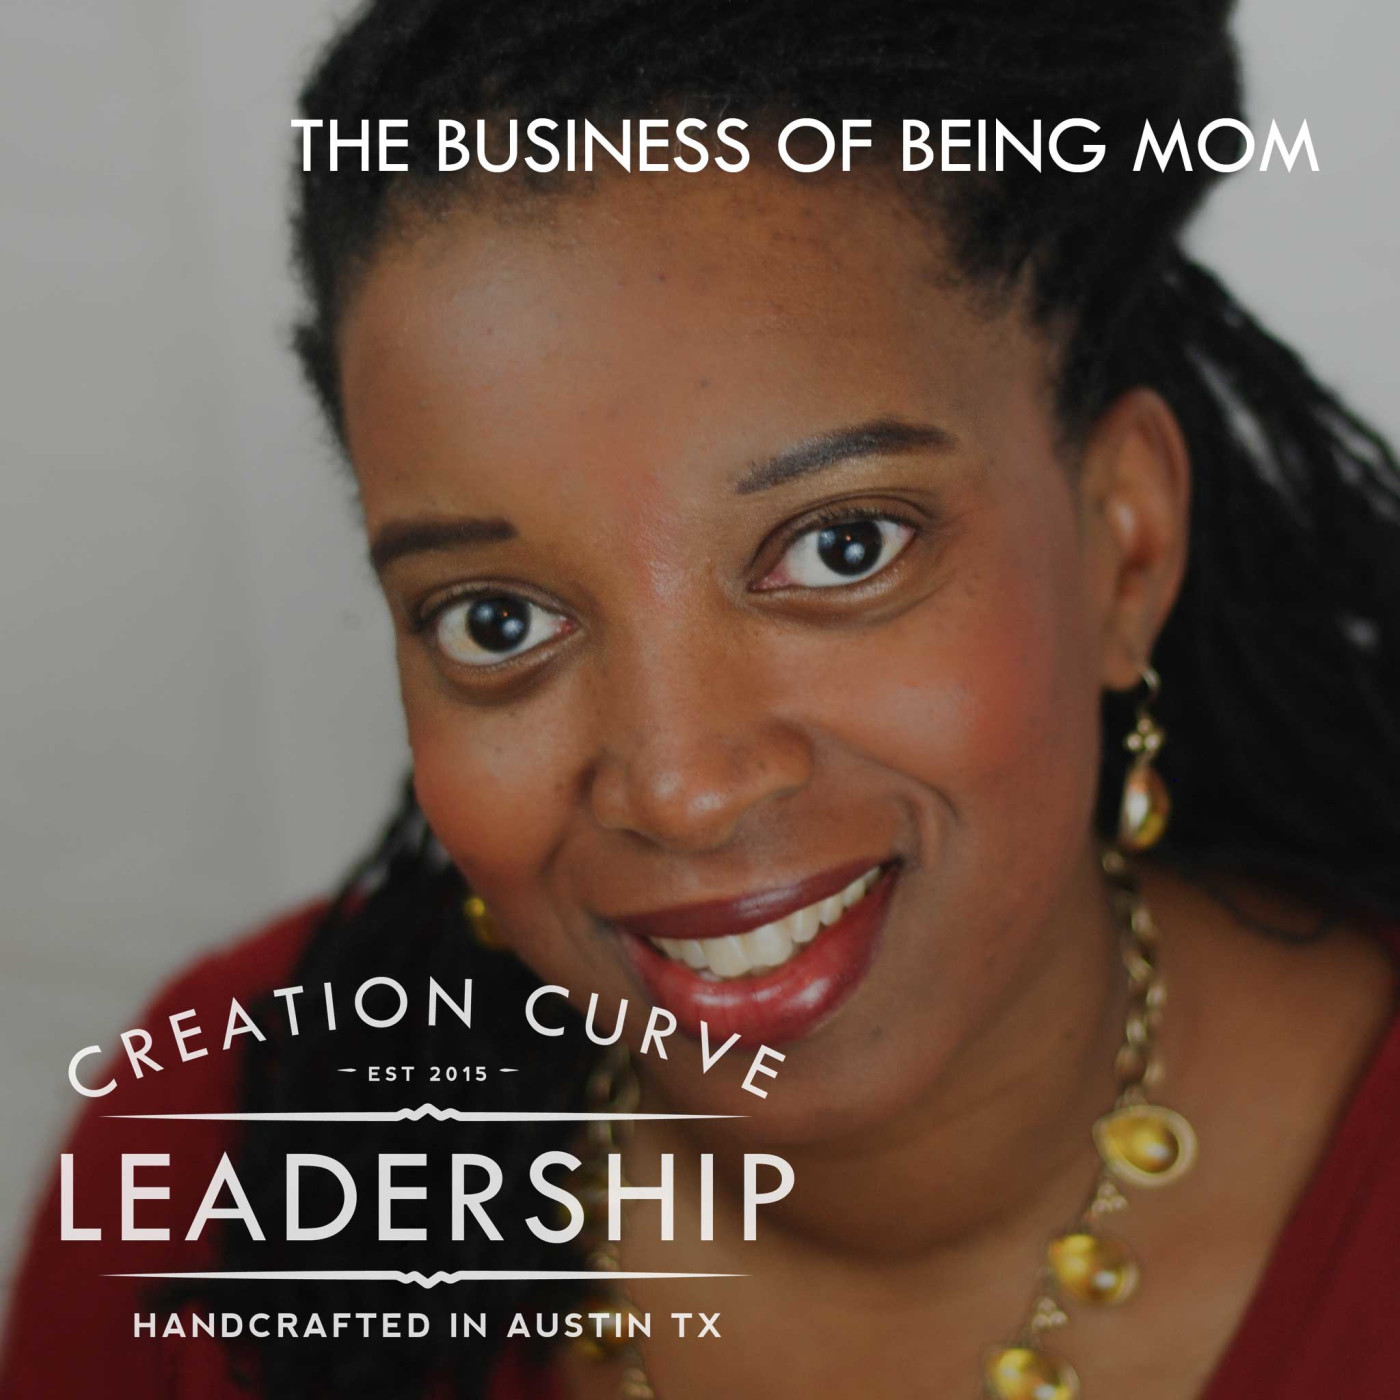 EPISODE 13 | THE BUSINESS OF BEING MOM WITH SUSAN SEAY